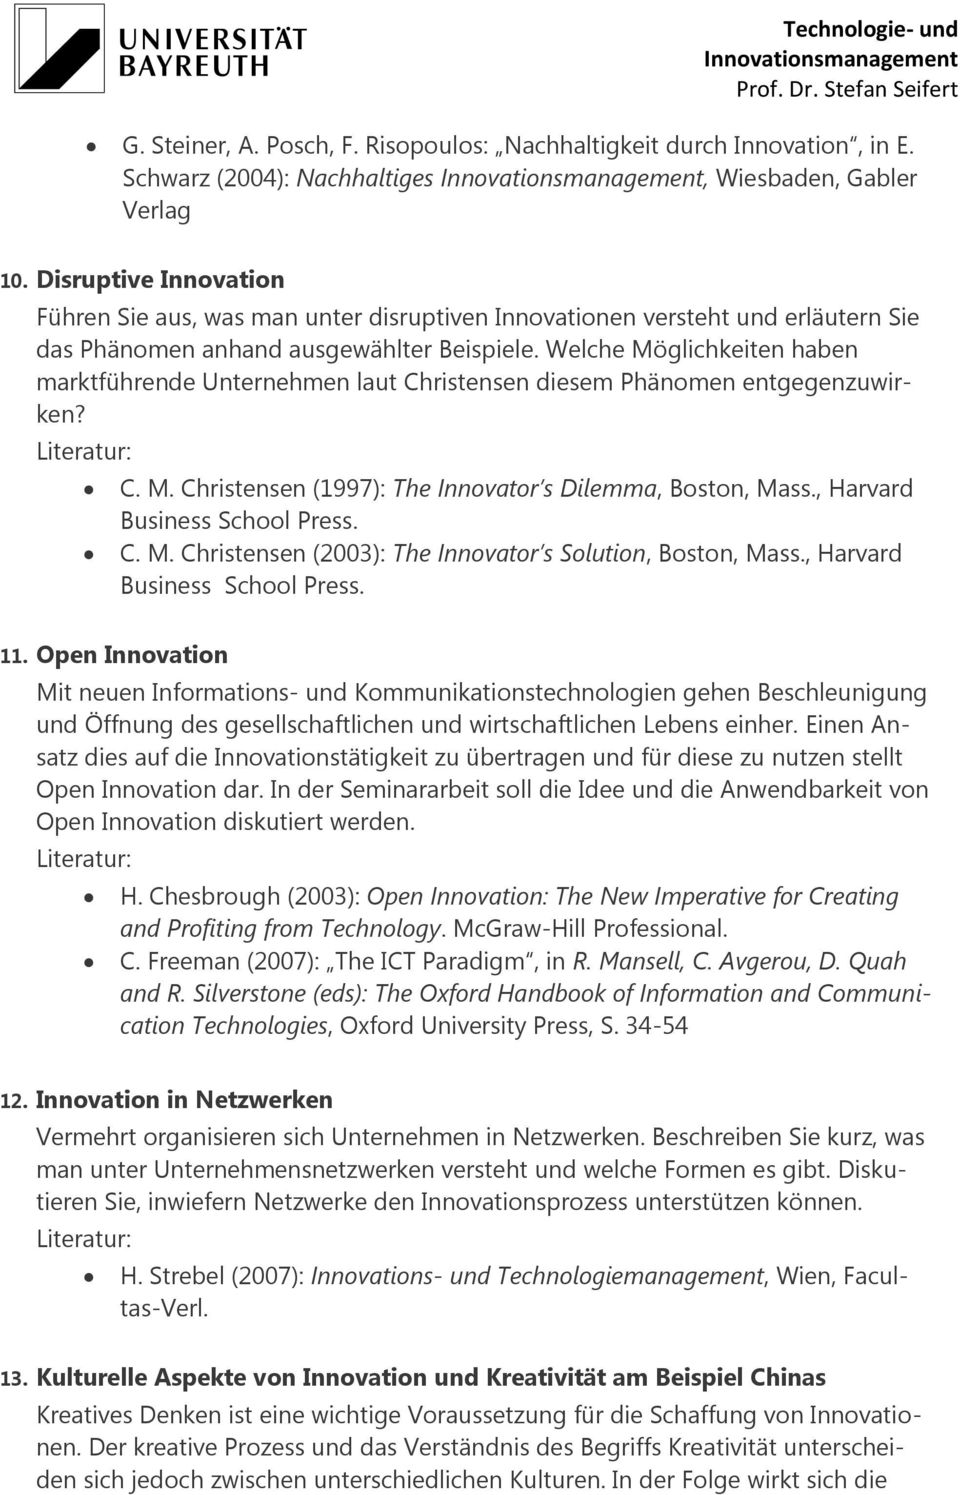 Welche Möglichkeiten haben marktführende Unternehmen laut Christensen diesem Phänomen entgegenzuwirken? C. M. Christensen (1997): The Innovator s Dilemma, Boston, Mass., Harvard Business School Press.